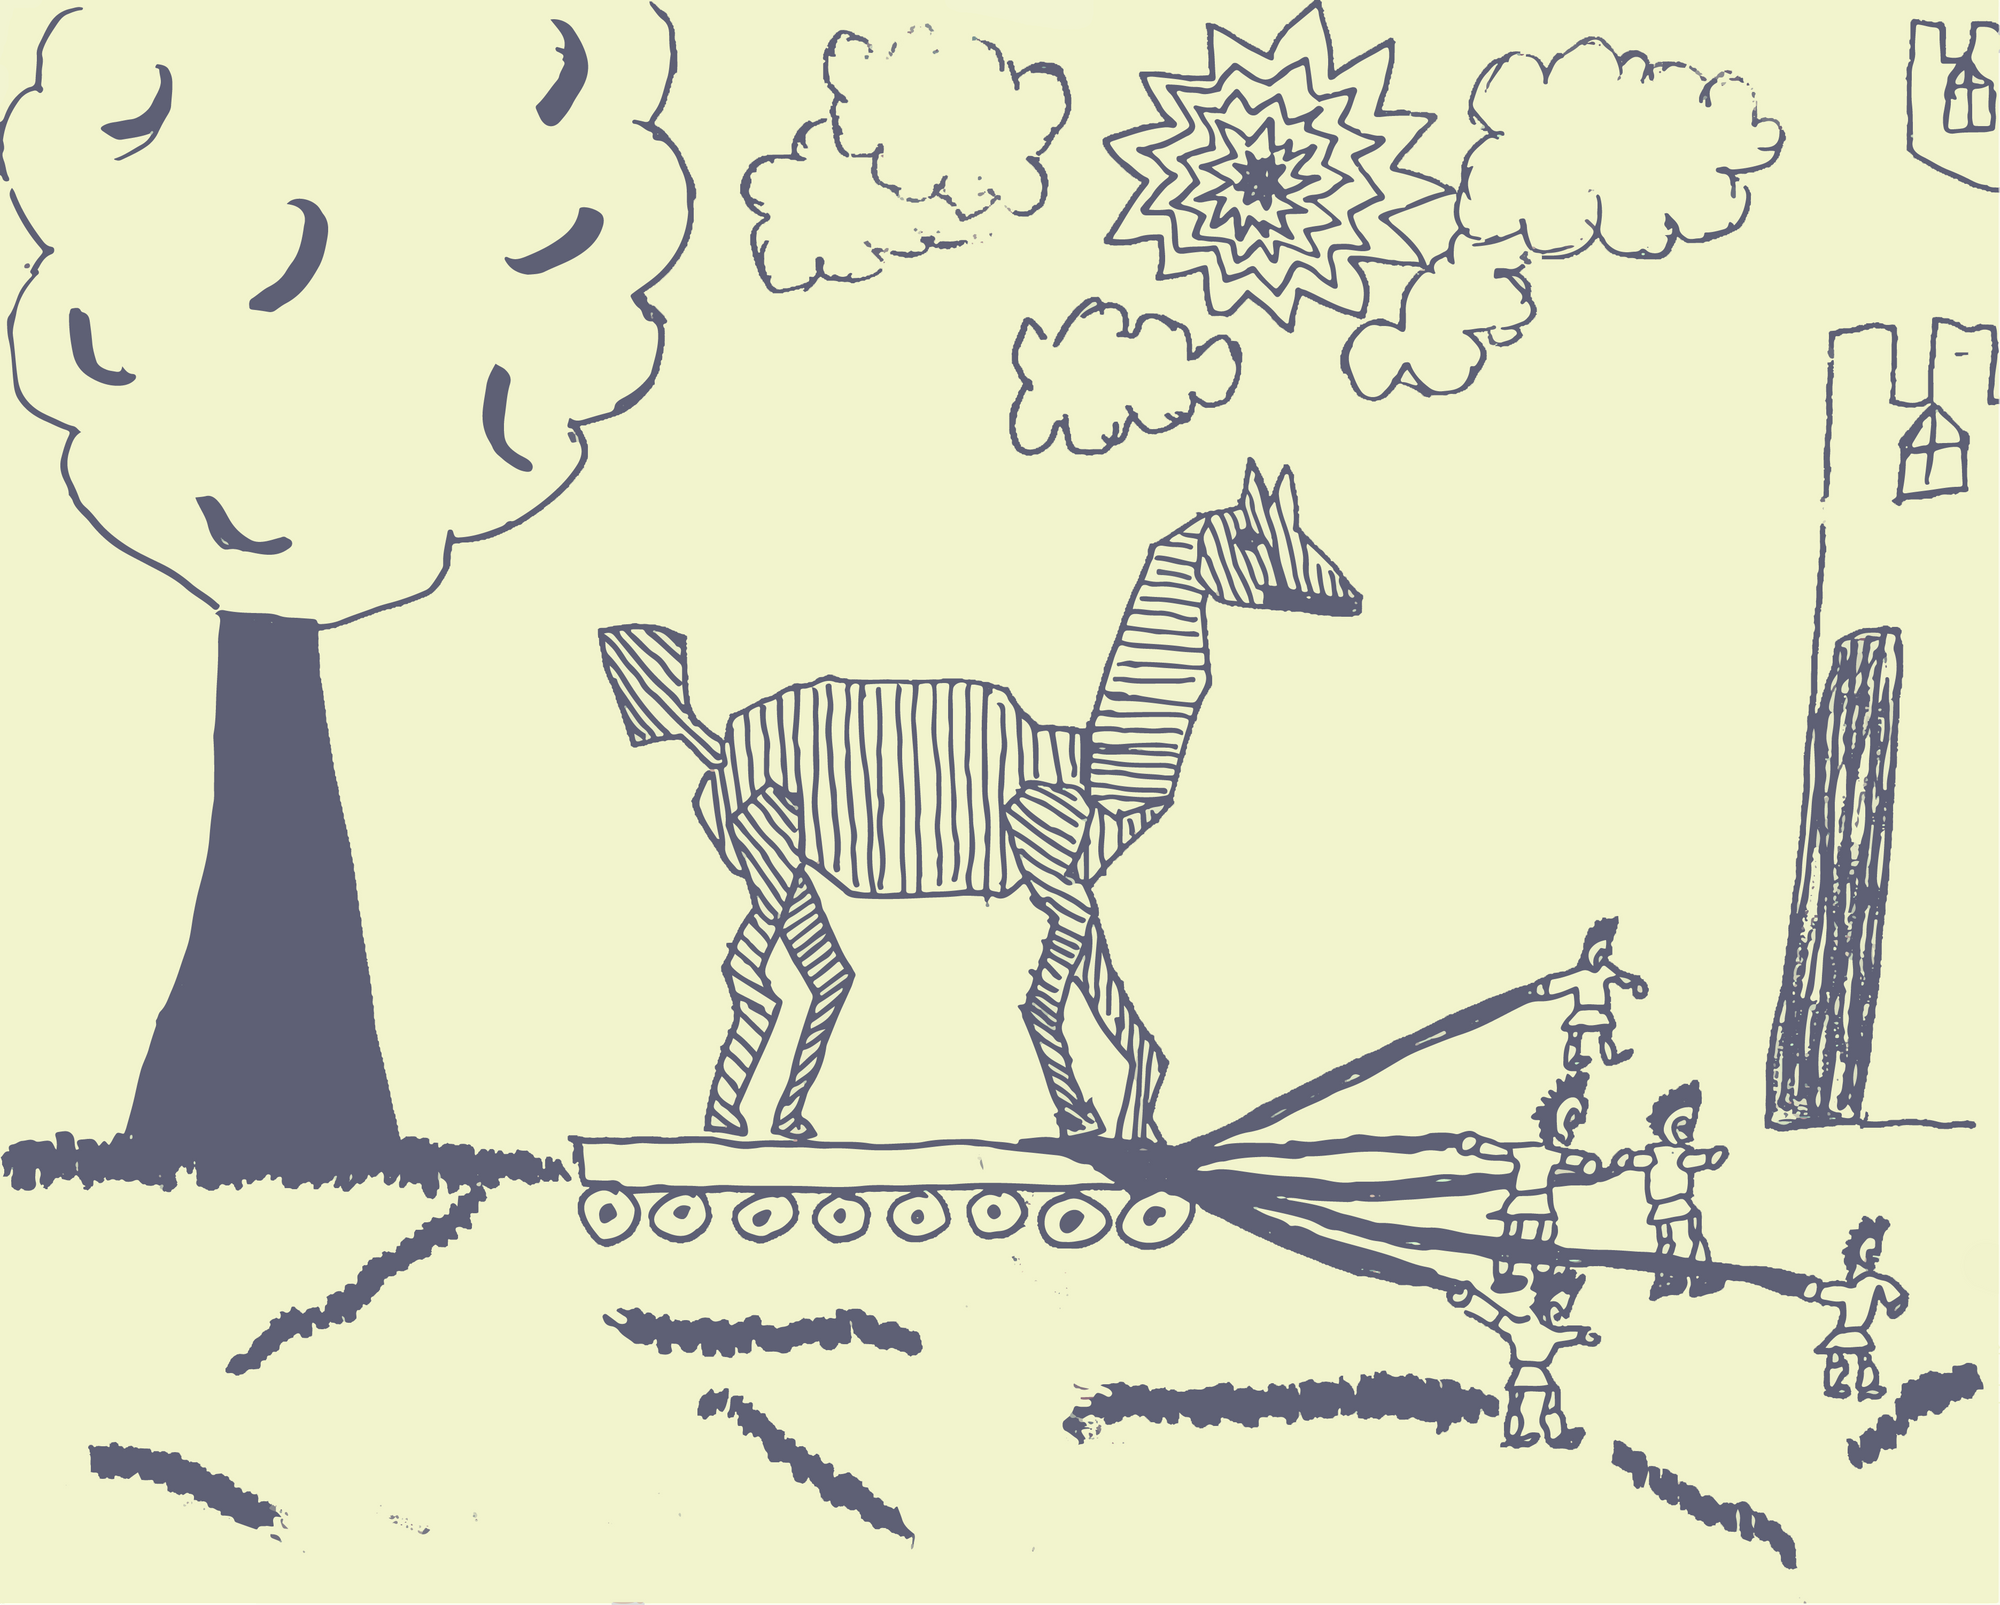 drawing of a trojan horse being pulled towards a castle